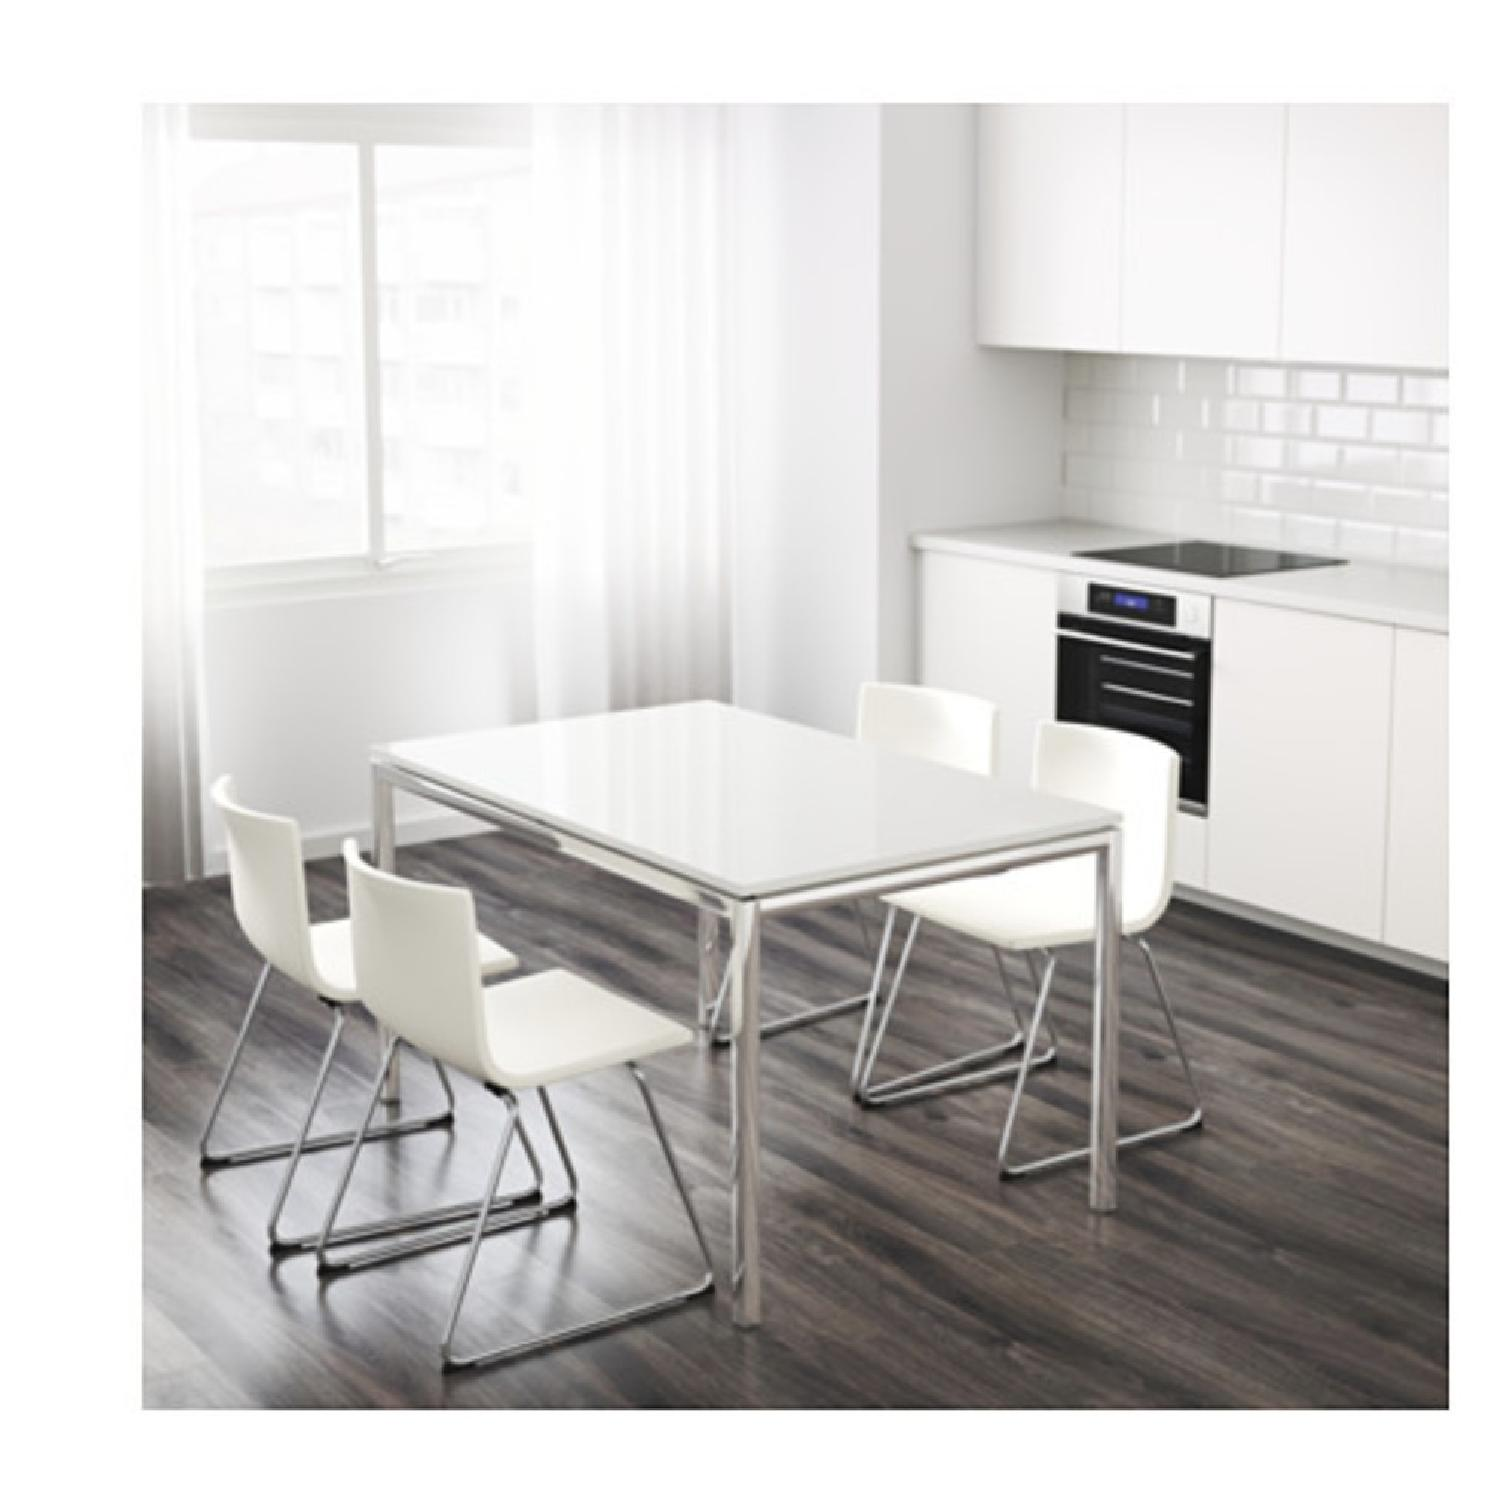 Ikea Torsby Chrome Plated High Gloss White Dining Table